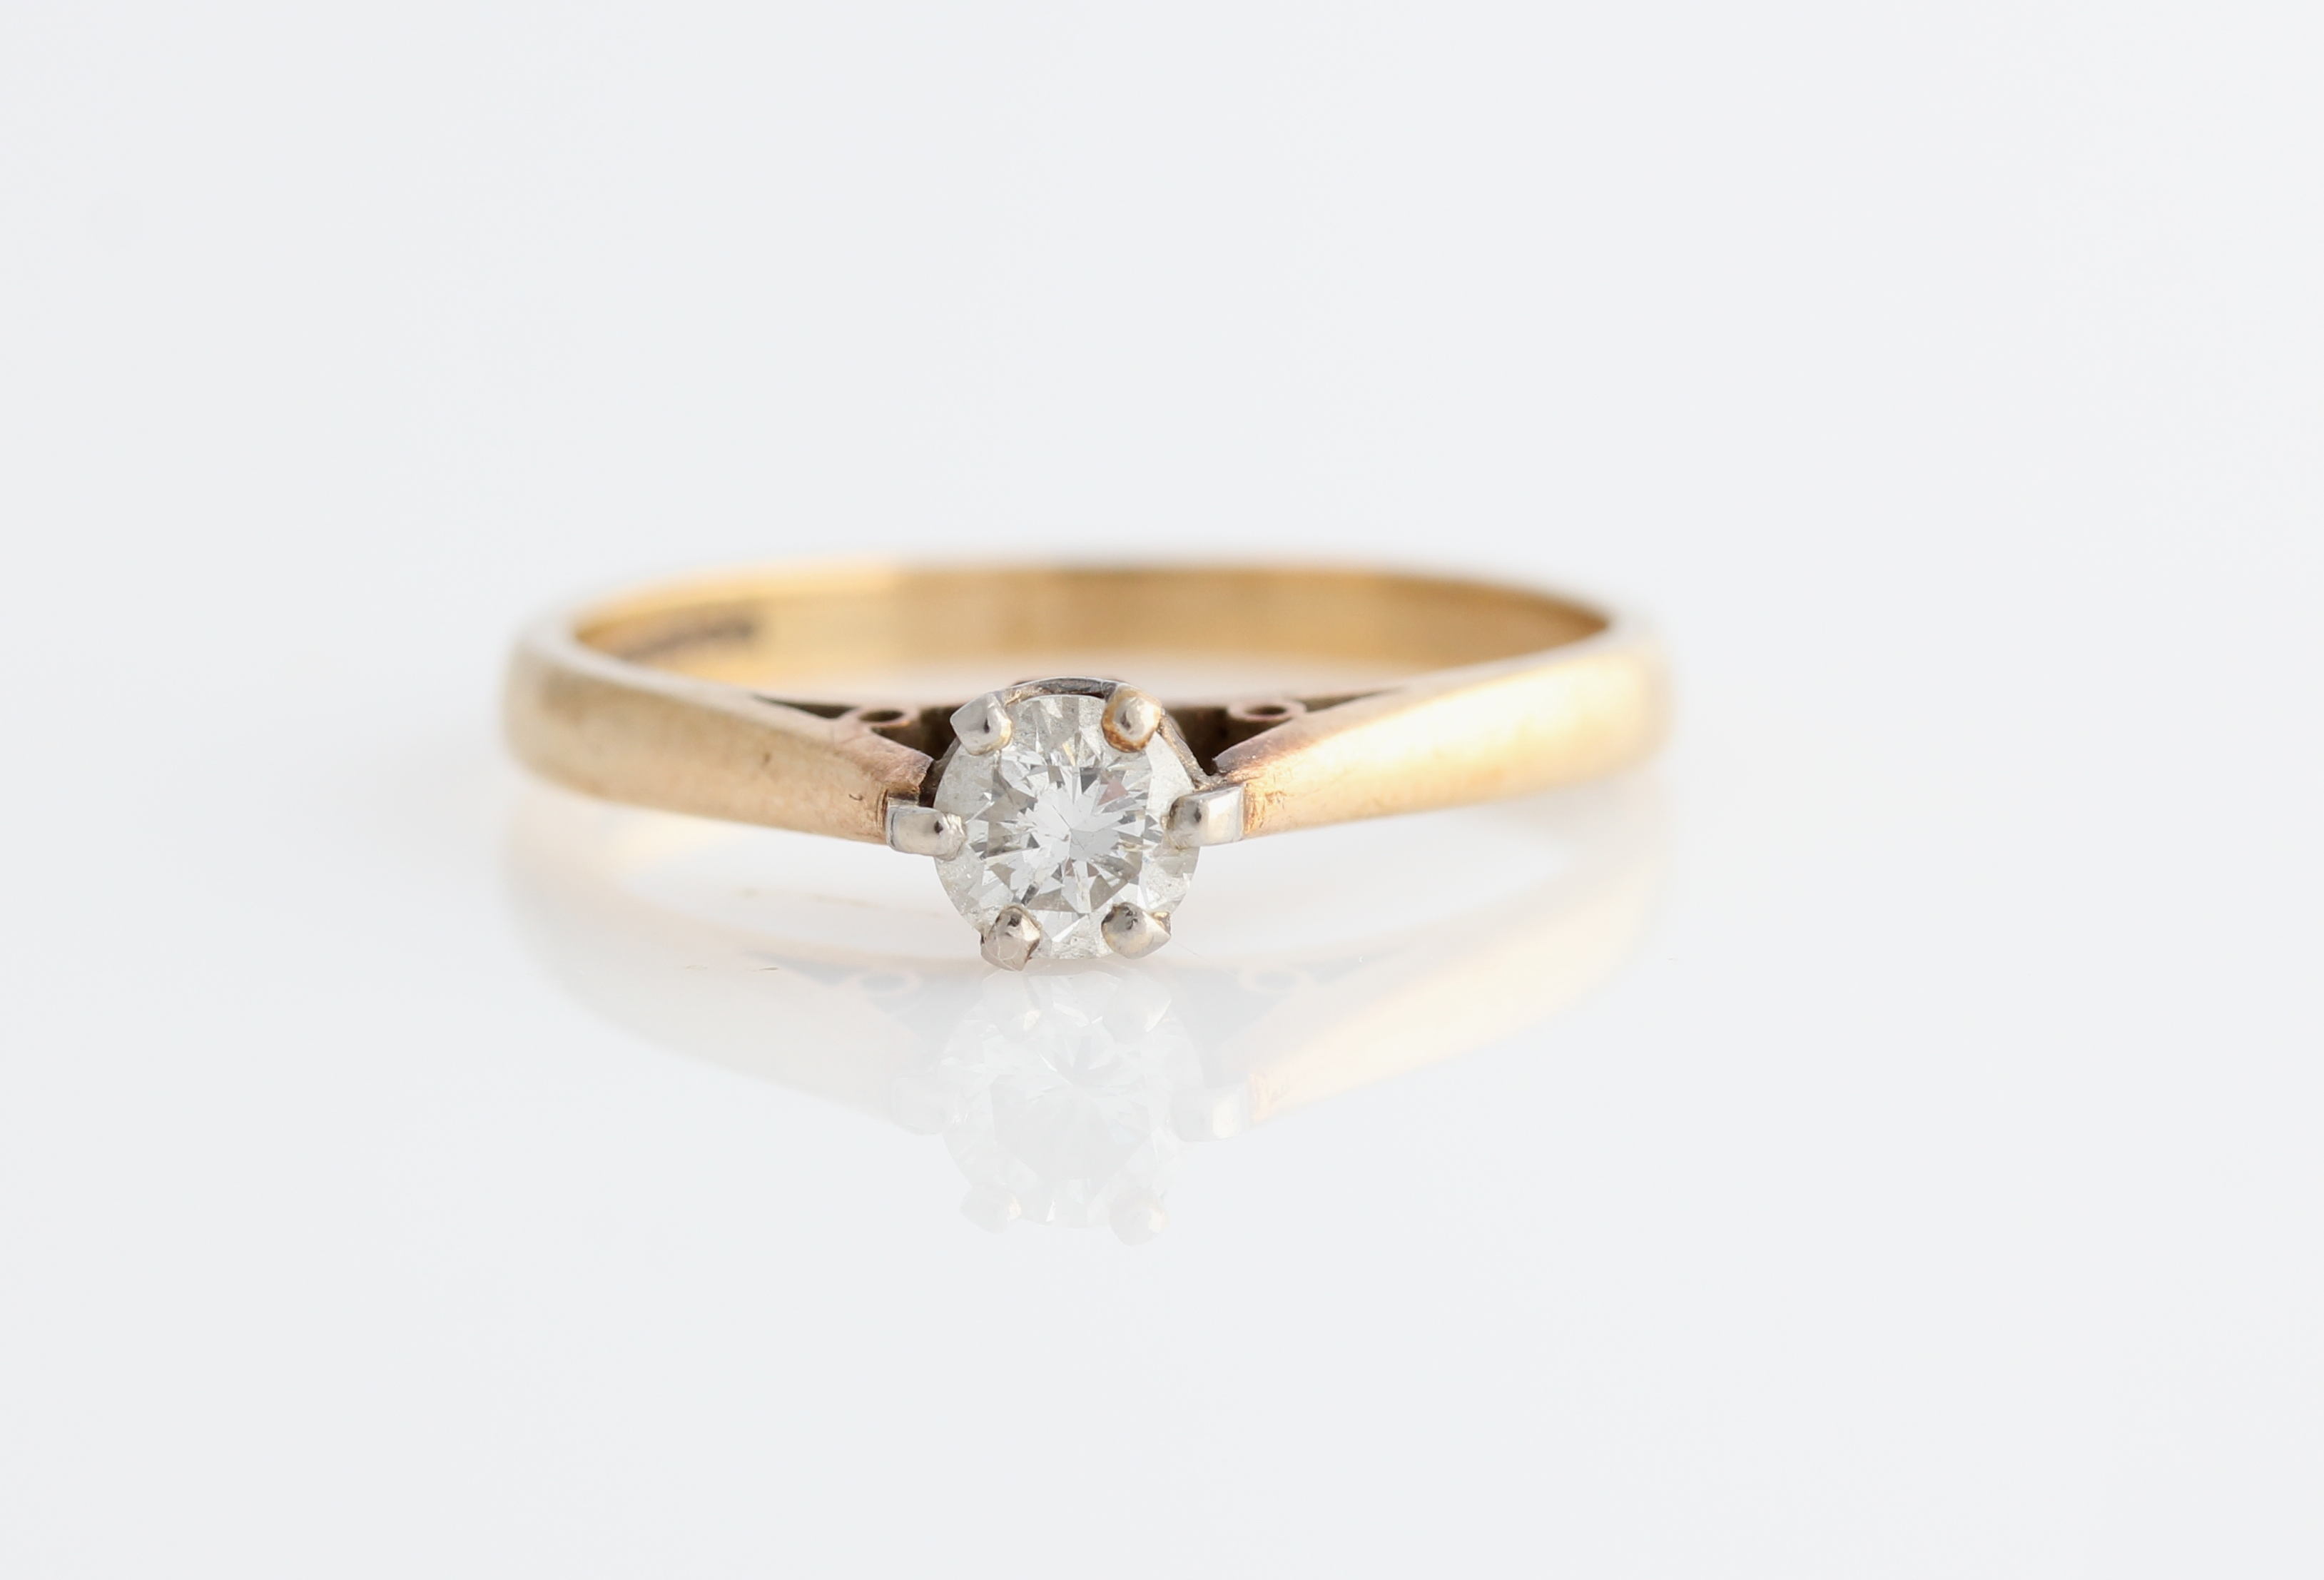 Lot 51 - A hallmarked 9ct yellow gold diamond solitaire ring, set with a round brilliant cut diamond,